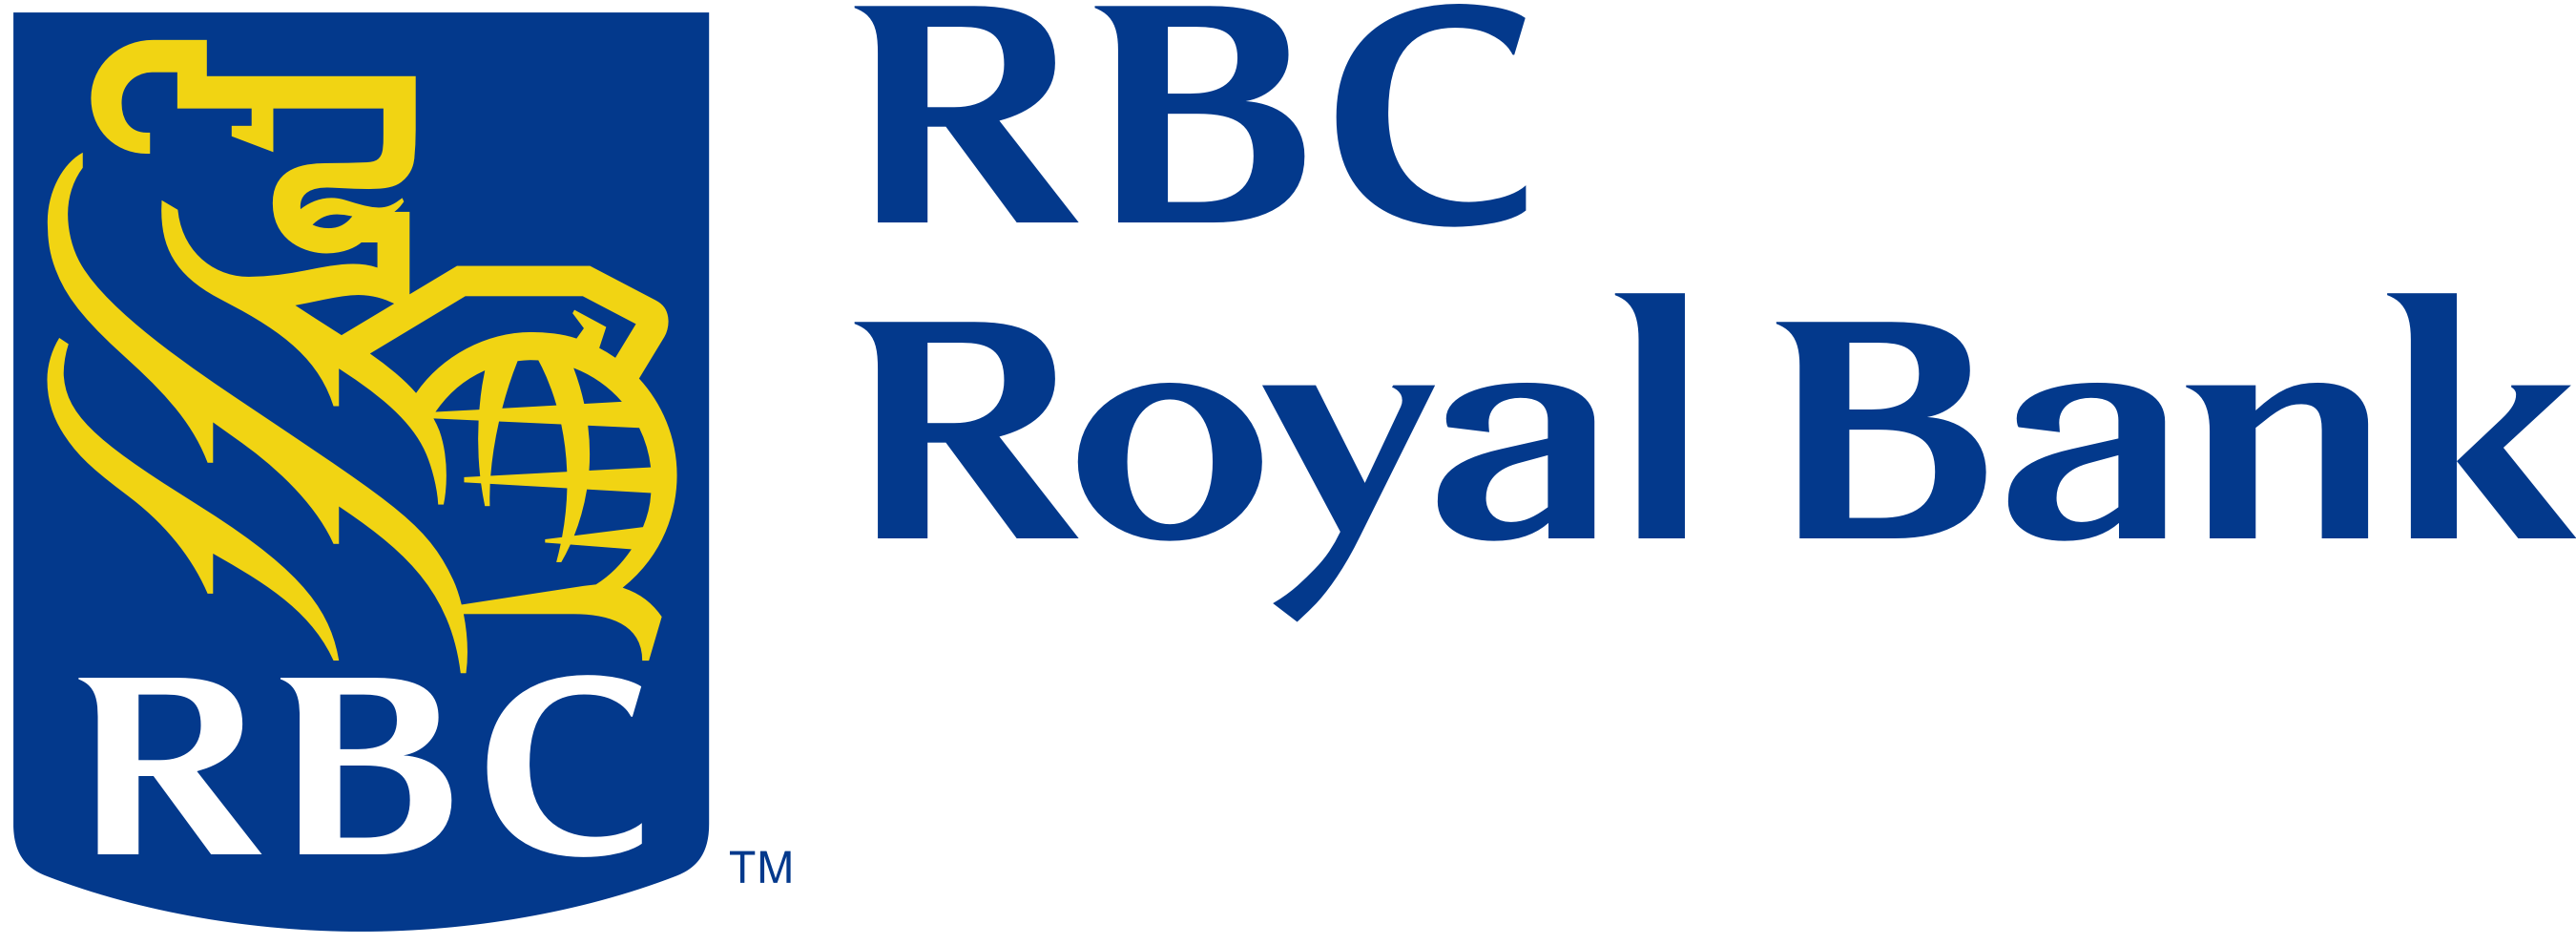 RBC Royal Bank wins regional retail award